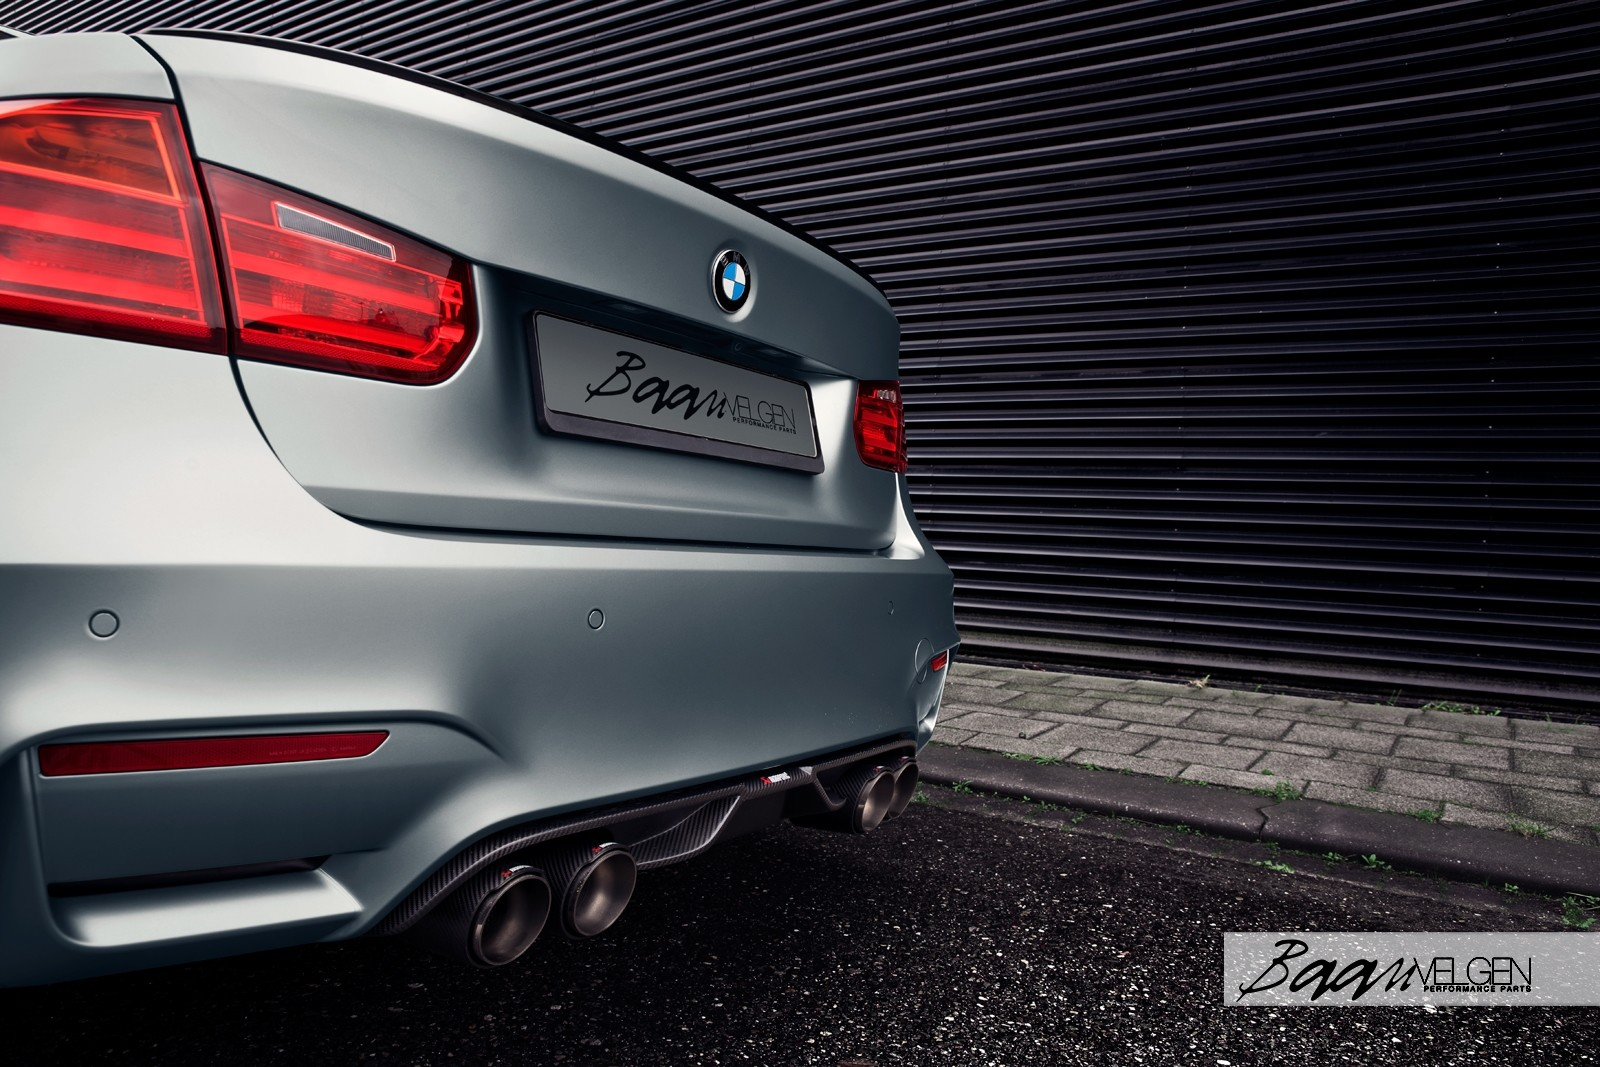 BMW F80 M3 with BBS FI-R Wheels and Akrapovic Exhaust